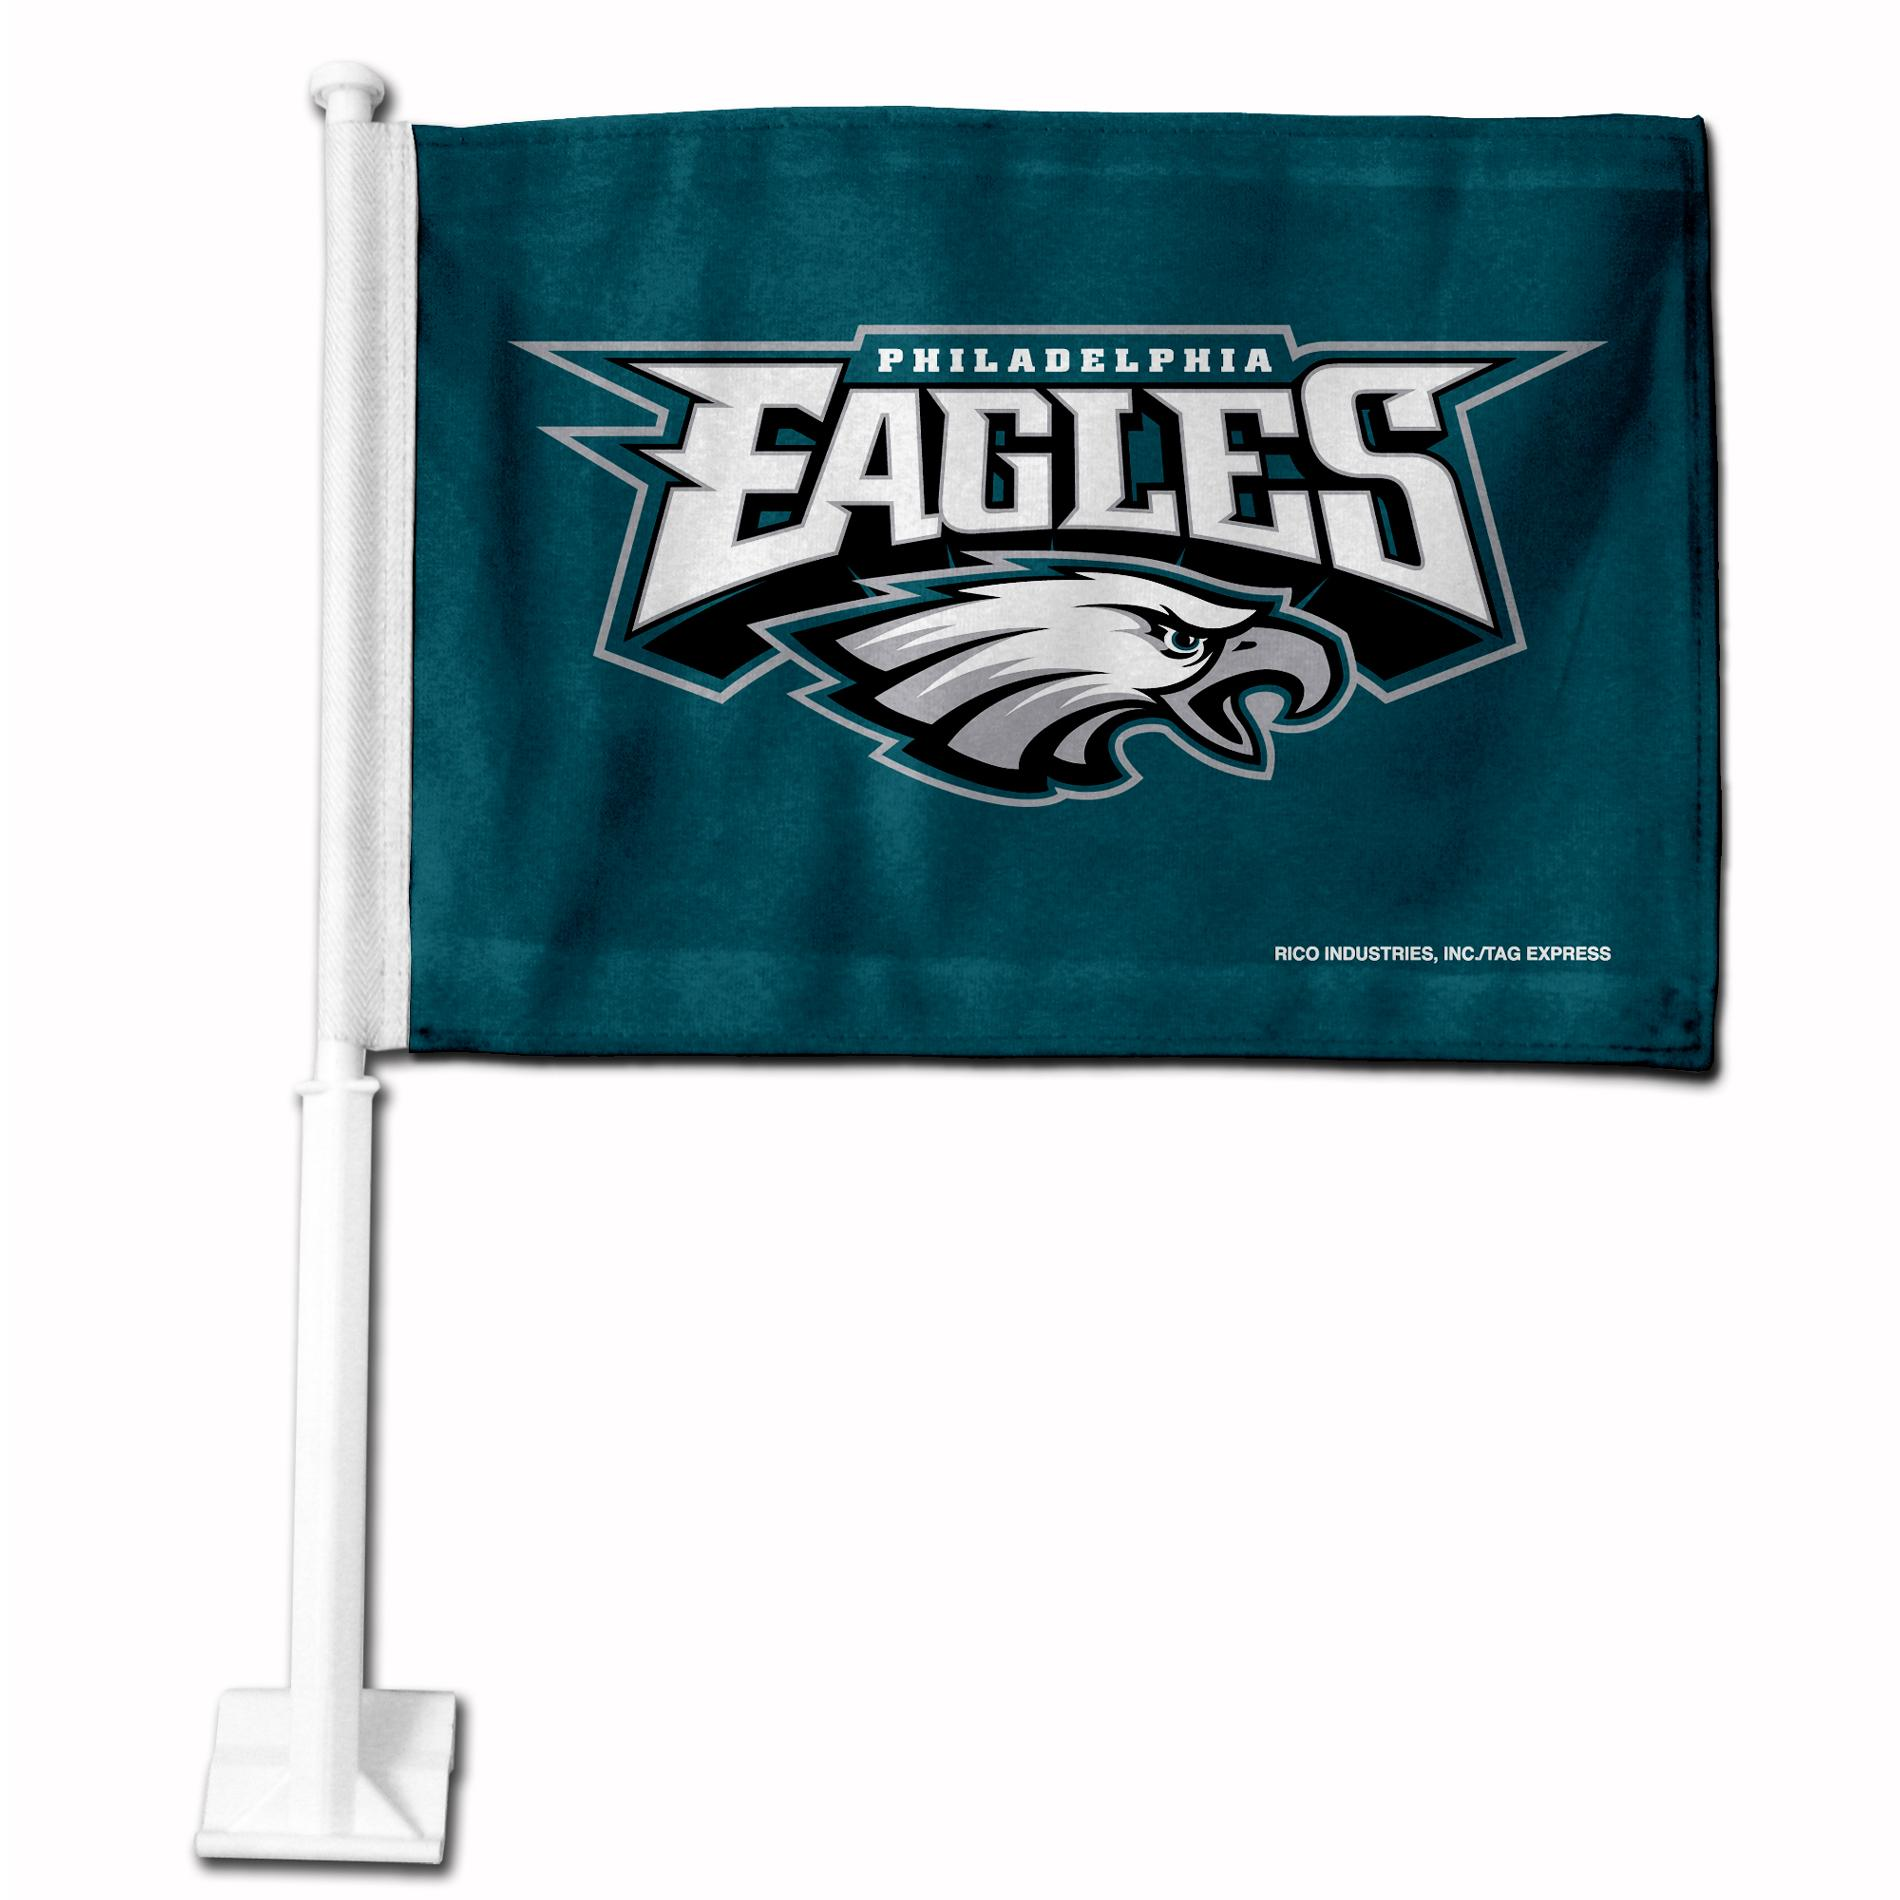 Philadelphia Eagles 19-inch Car Flag